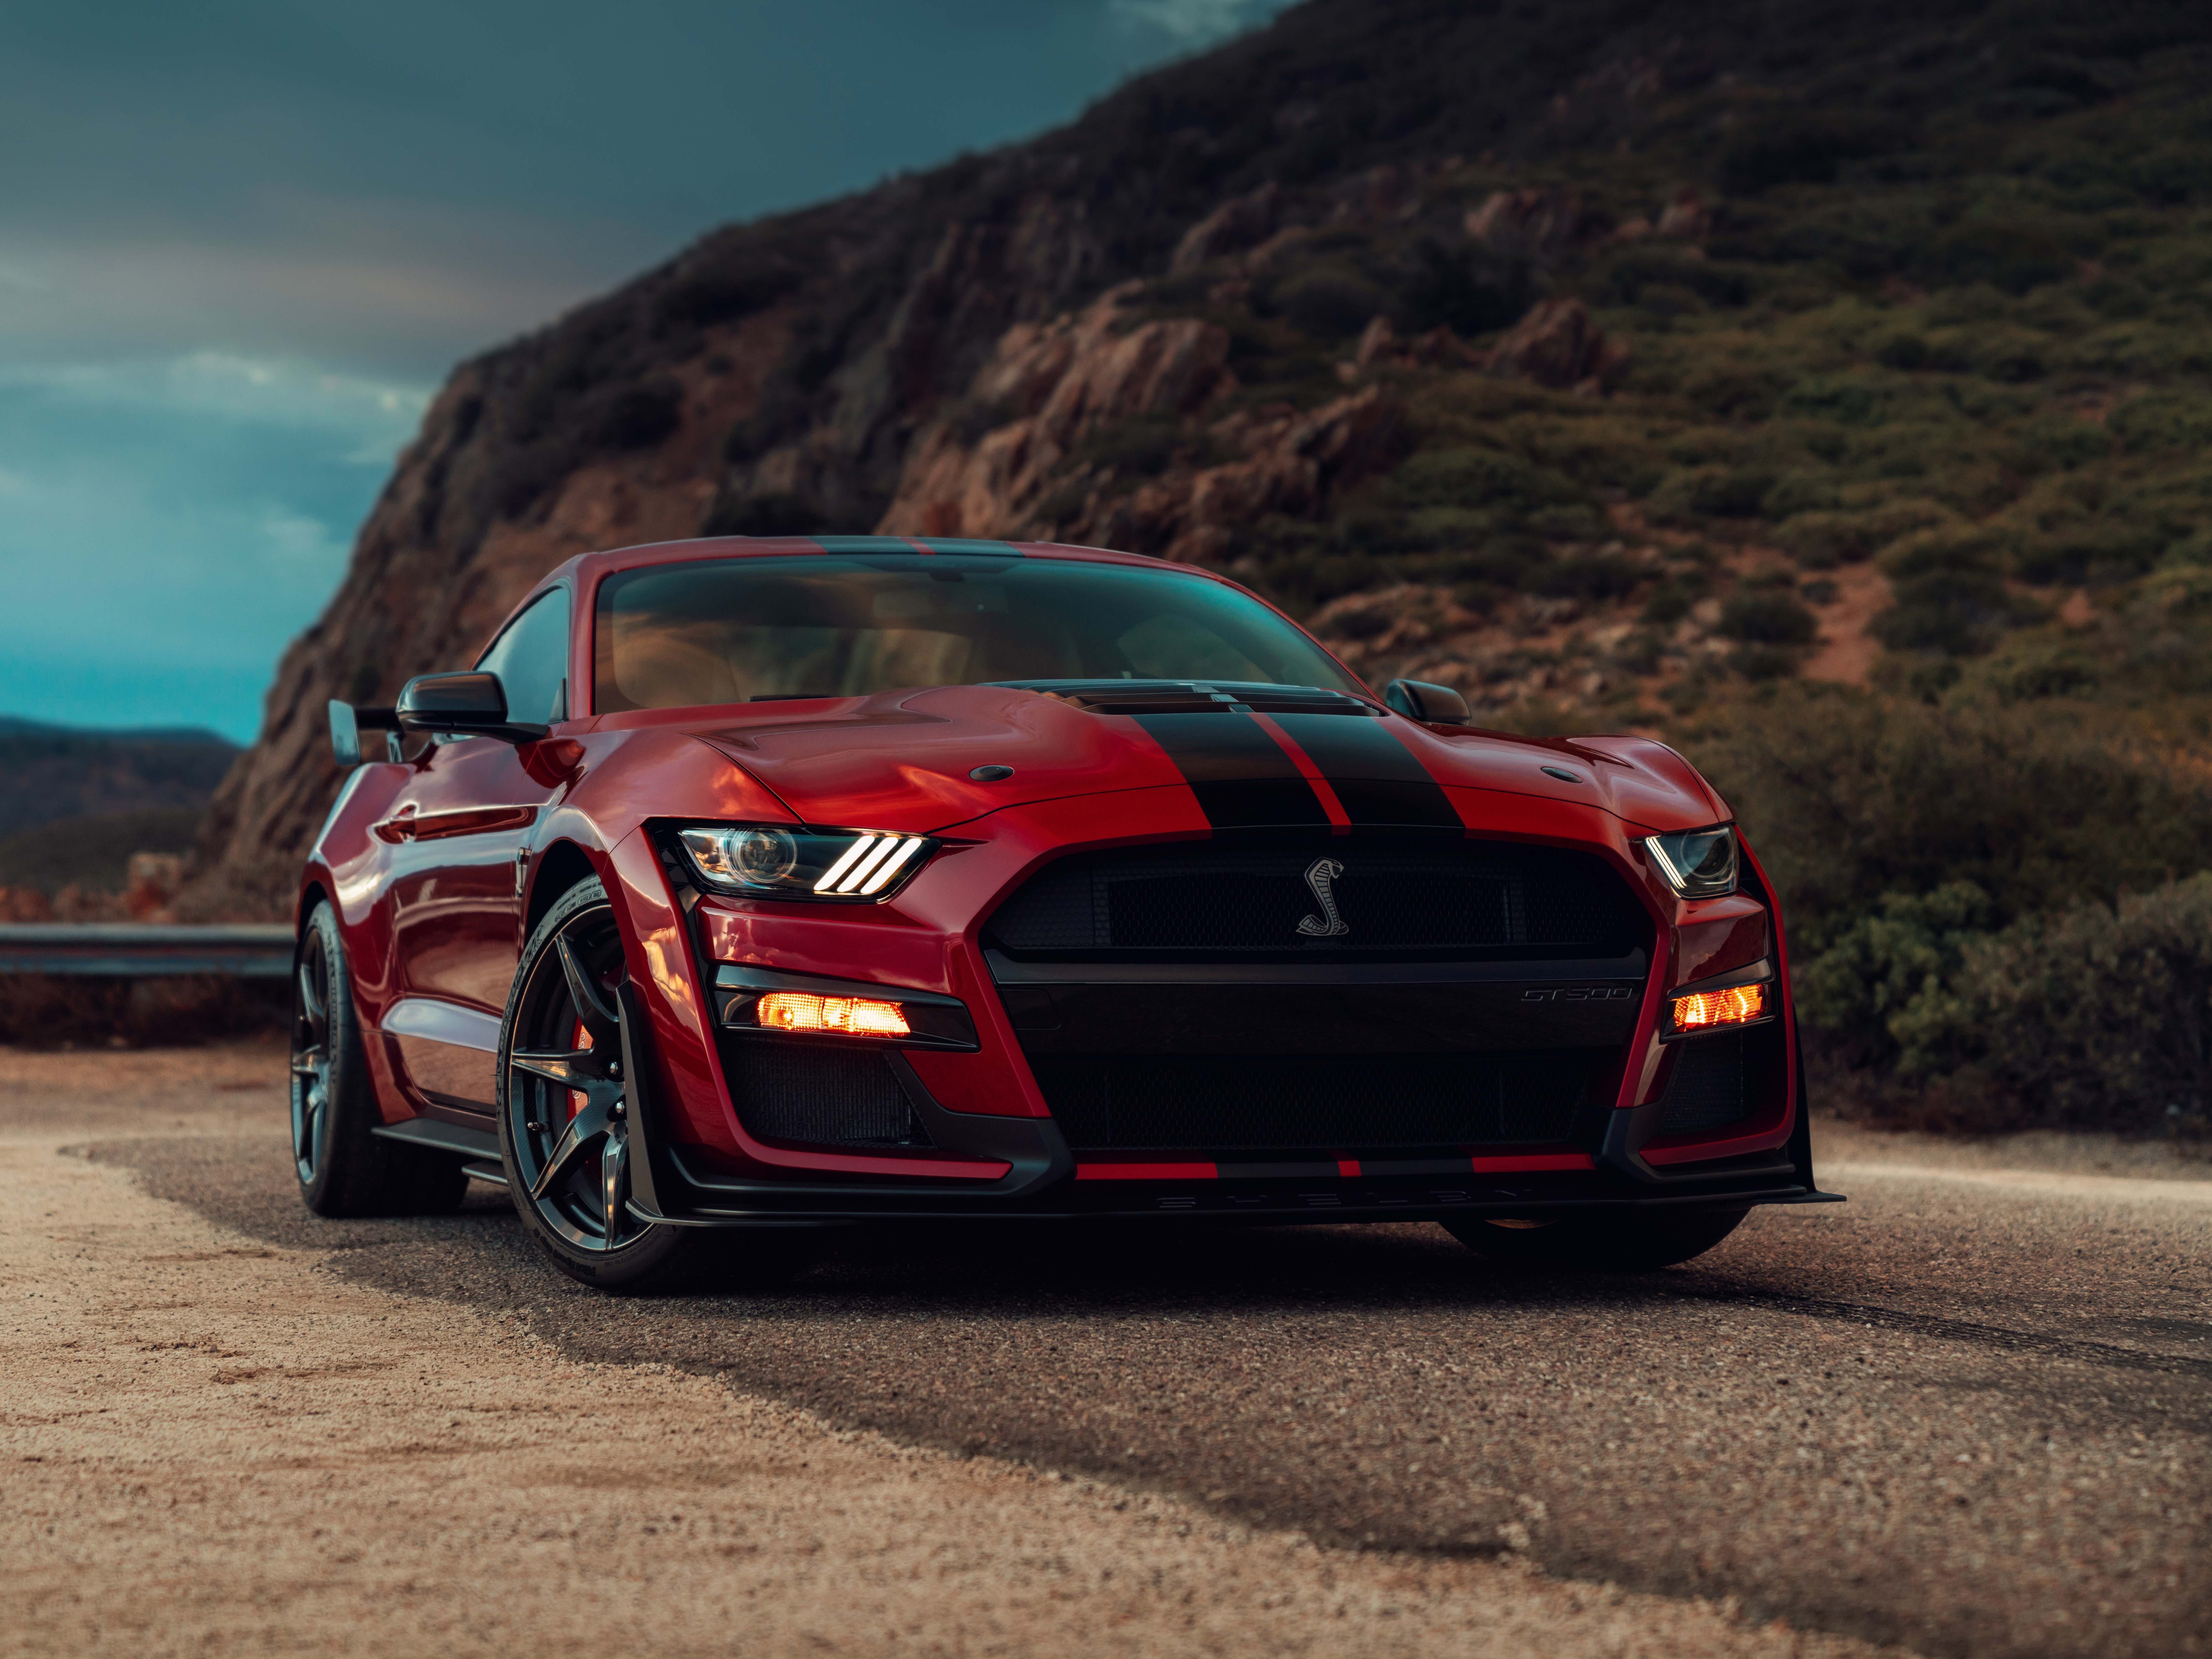 Ford unveils the most-powerful Mustang ever, the 700-plus horsepower Shelby GT500, at the Detroit auto show Mondaymorning, Jan. 14, 2019.